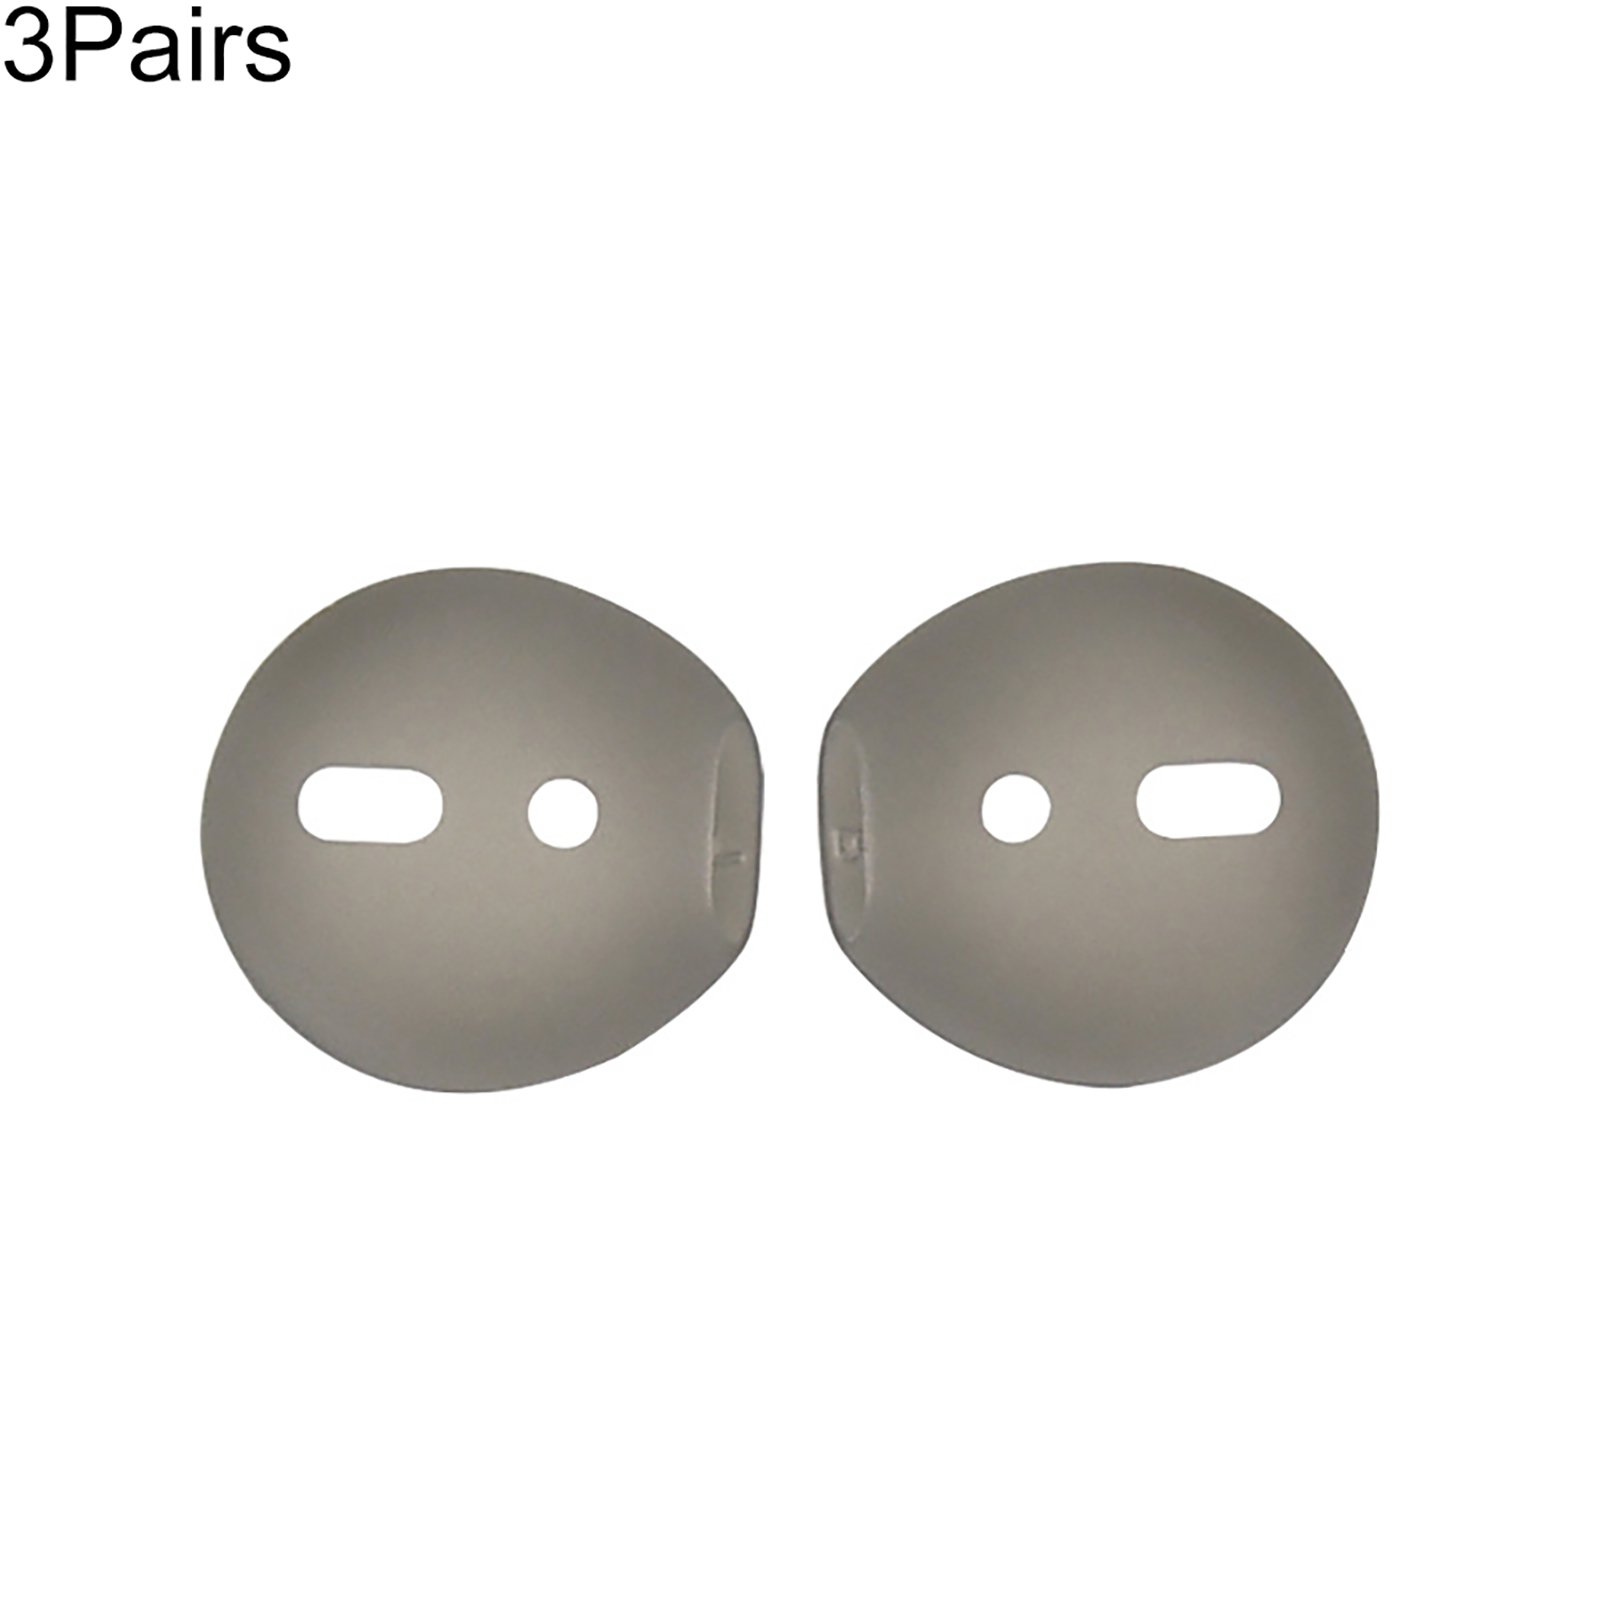 1-3-5-Pairs-Replacement-Silicone-Eartips-Anti-Lost-Earbud-Cover-For-Apple-Airpod thumbnail 21